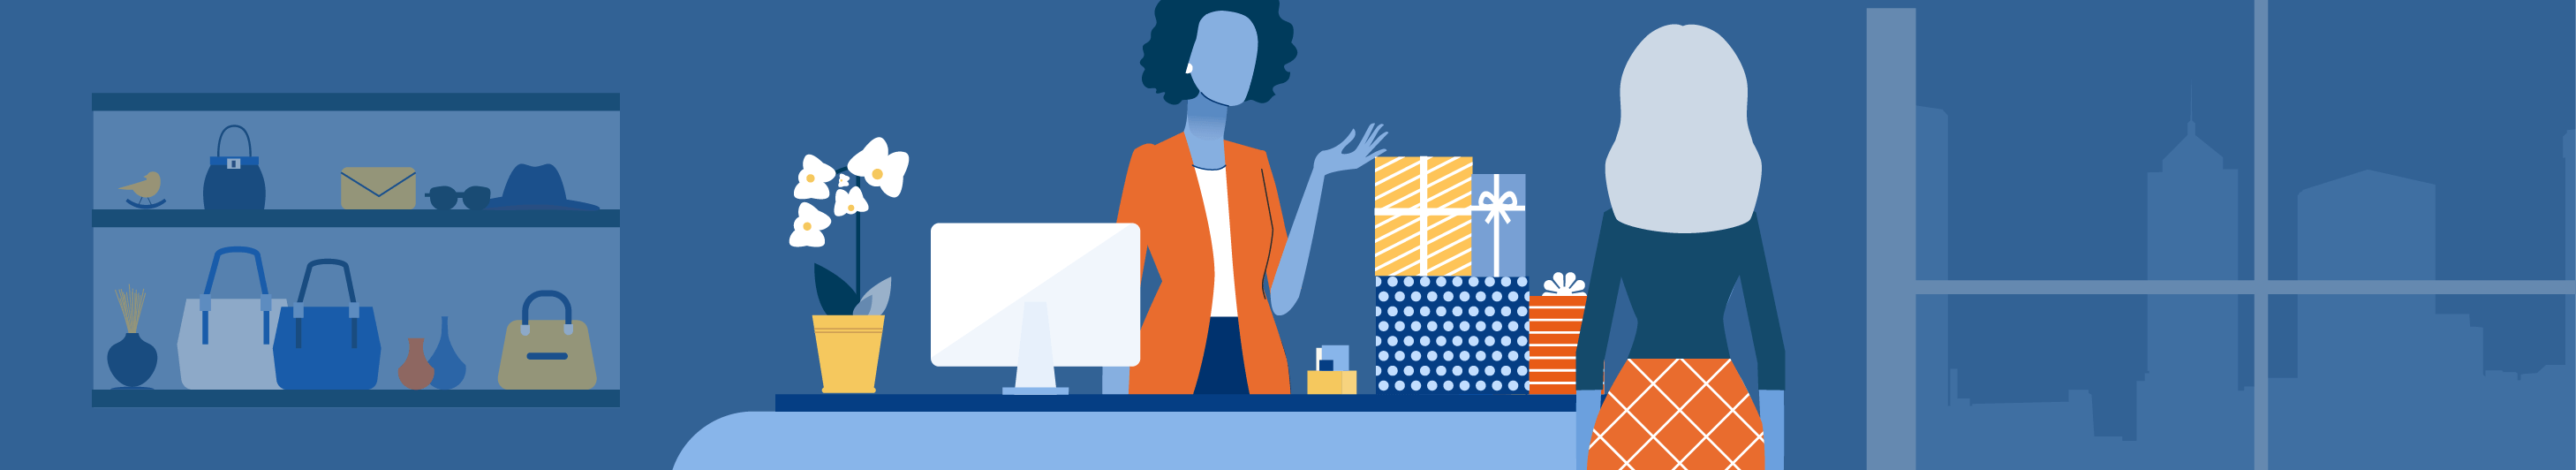 Illustration of woman purchasing items at a retail store